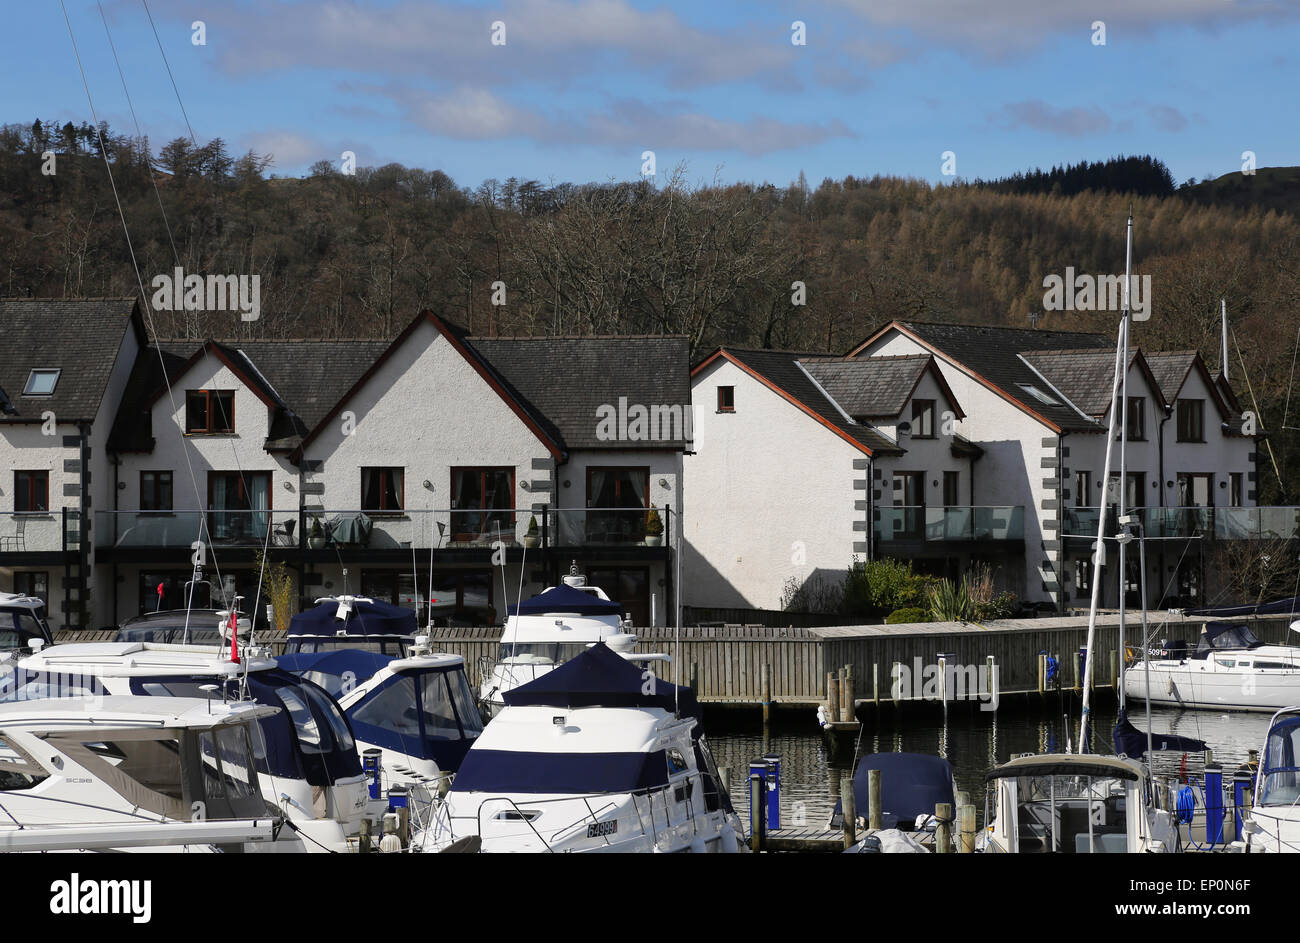 Boats and houses in Windermere marina village in Lake District, UK Stock Photo